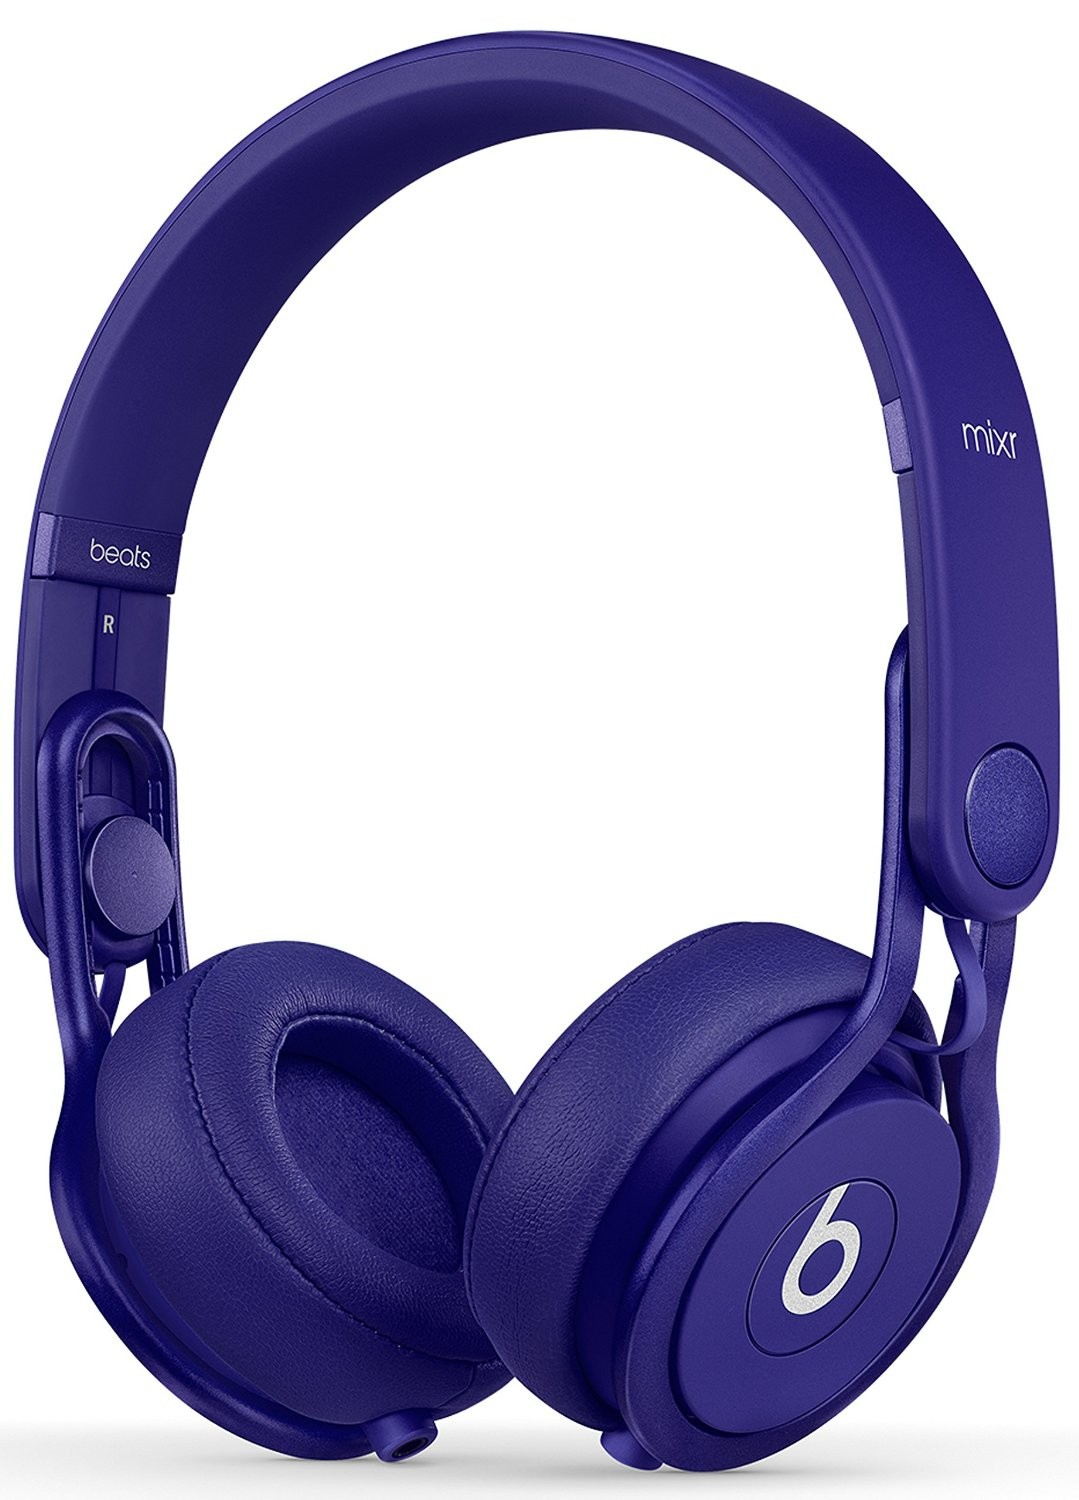 Beats by Dr. Dre Mixr On-Ear Headset indigo